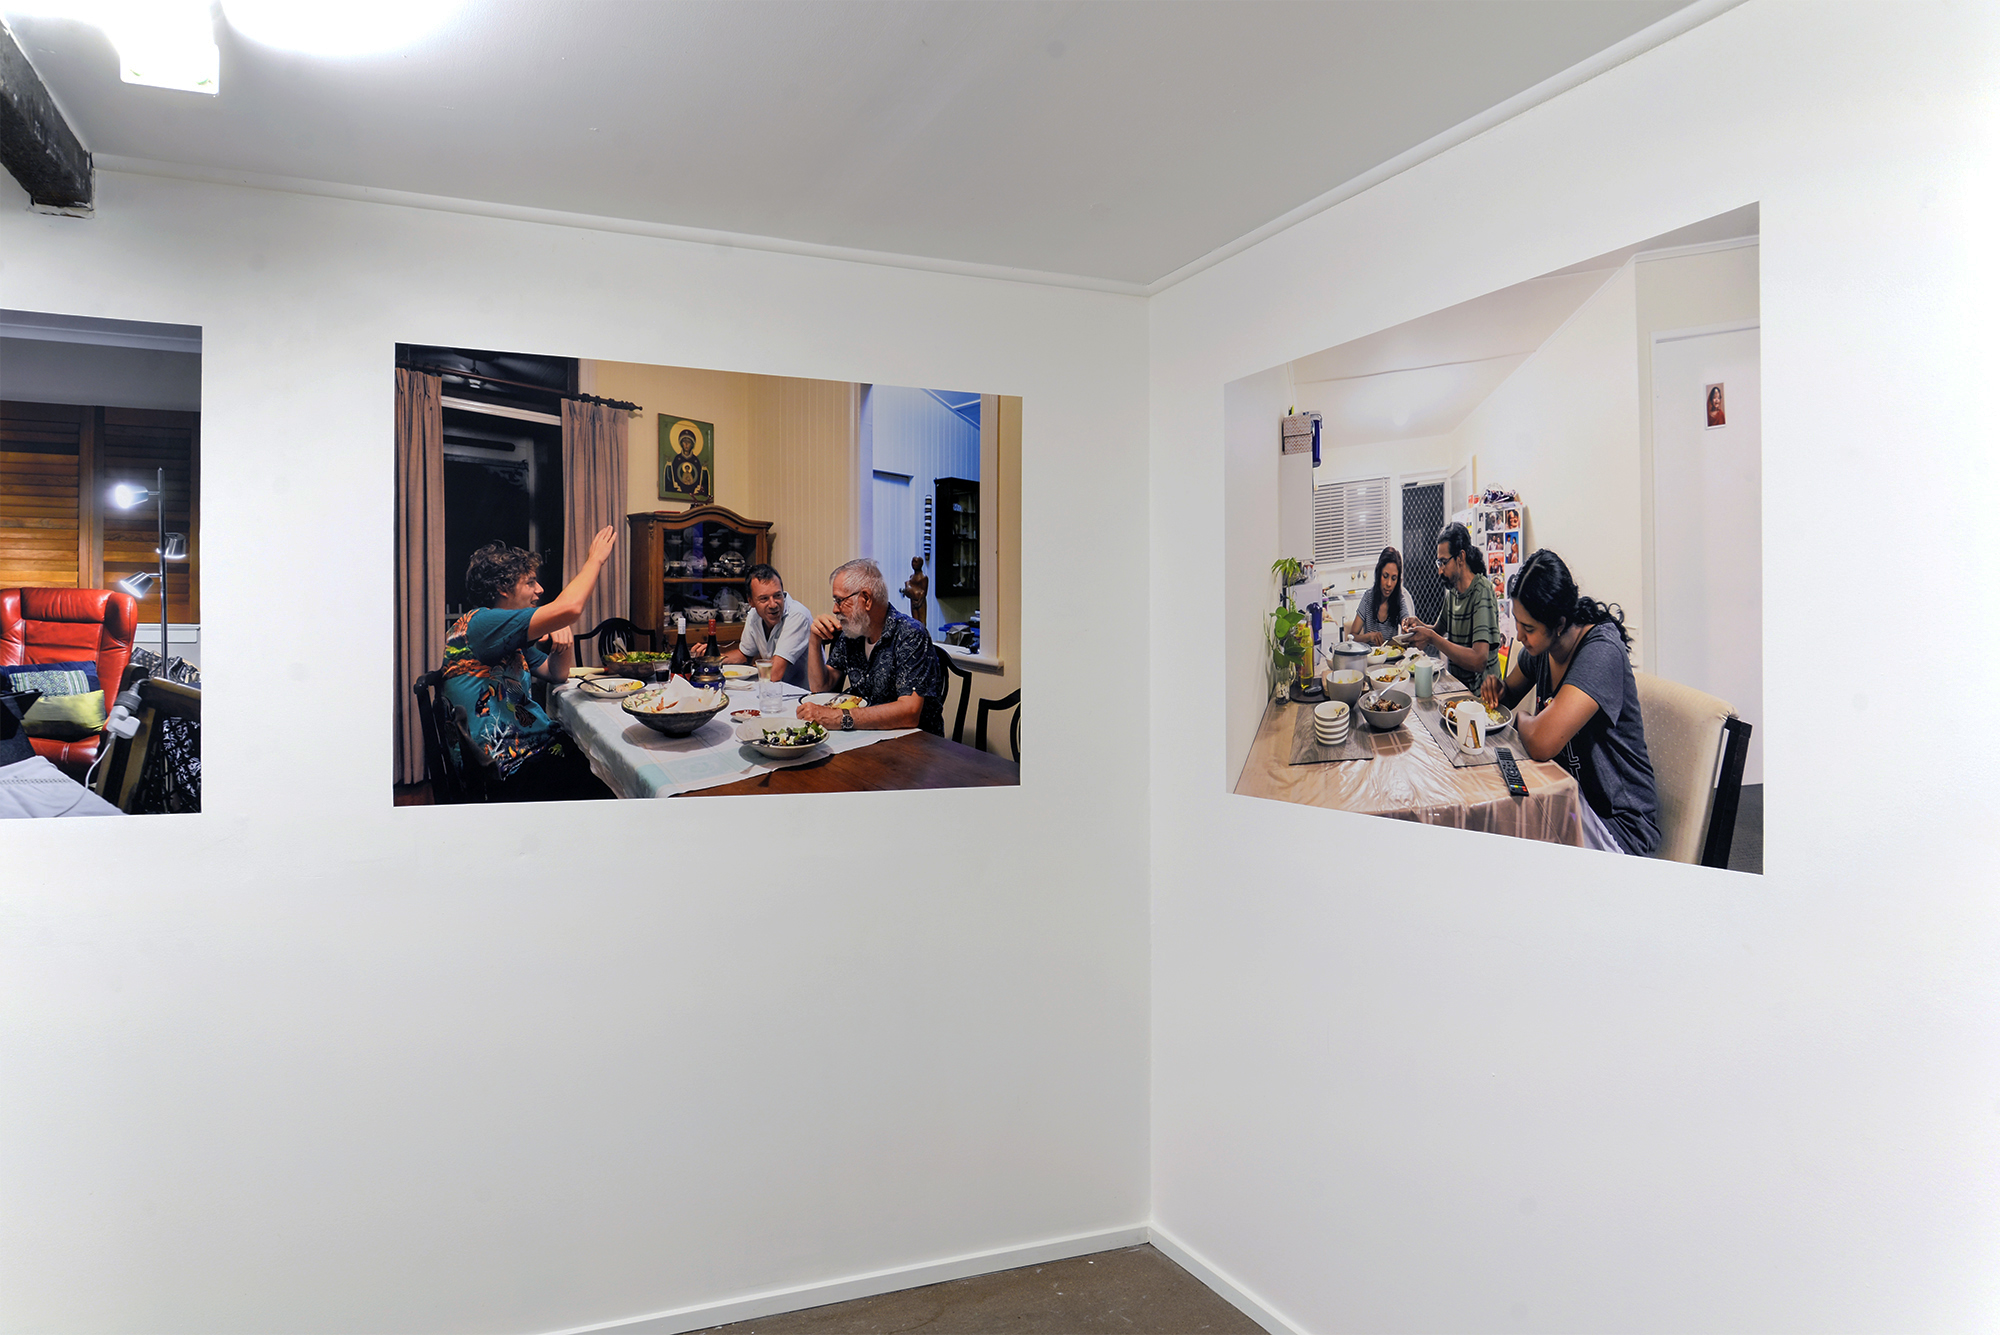 Left:  Jordan, Lincoln and Leonard  2018 archival inkjet print on Phototex  Right:  Shehab, Runa and Ahona  2018 archival inkjet print on Phototex